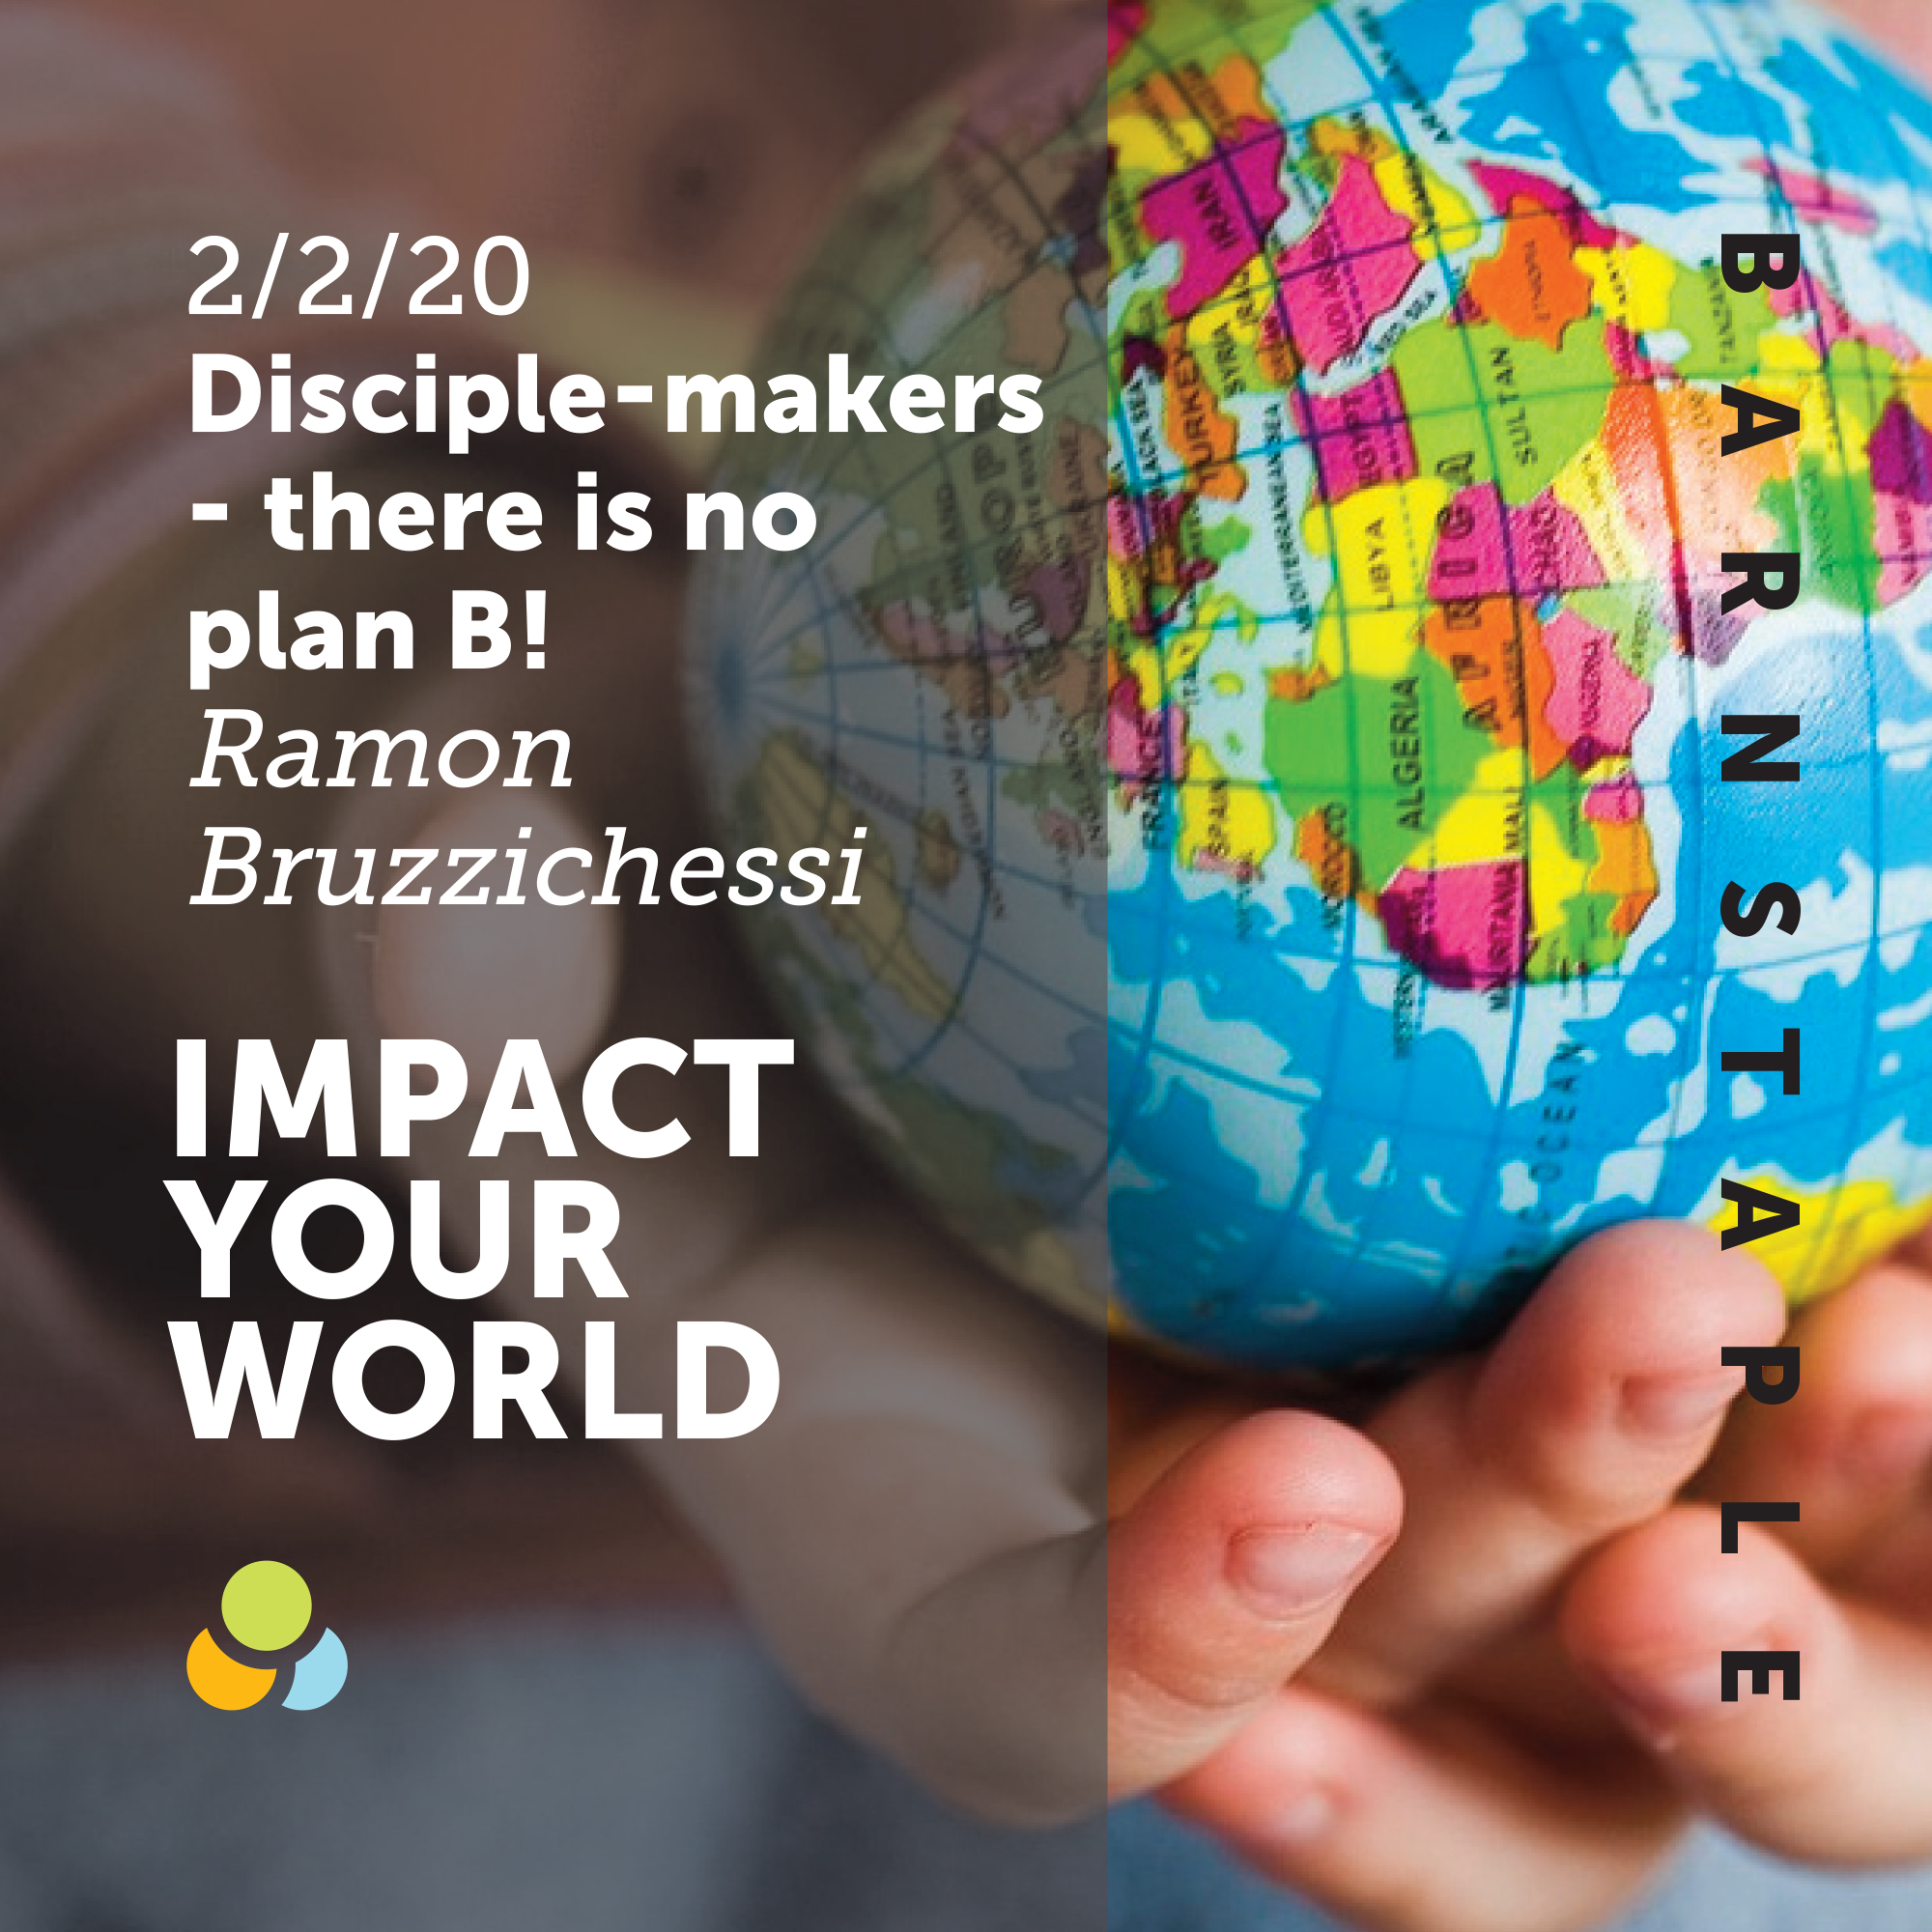 [Impact your world] Disciple-makers. There is no plan B | Ramon Bruzzichessi